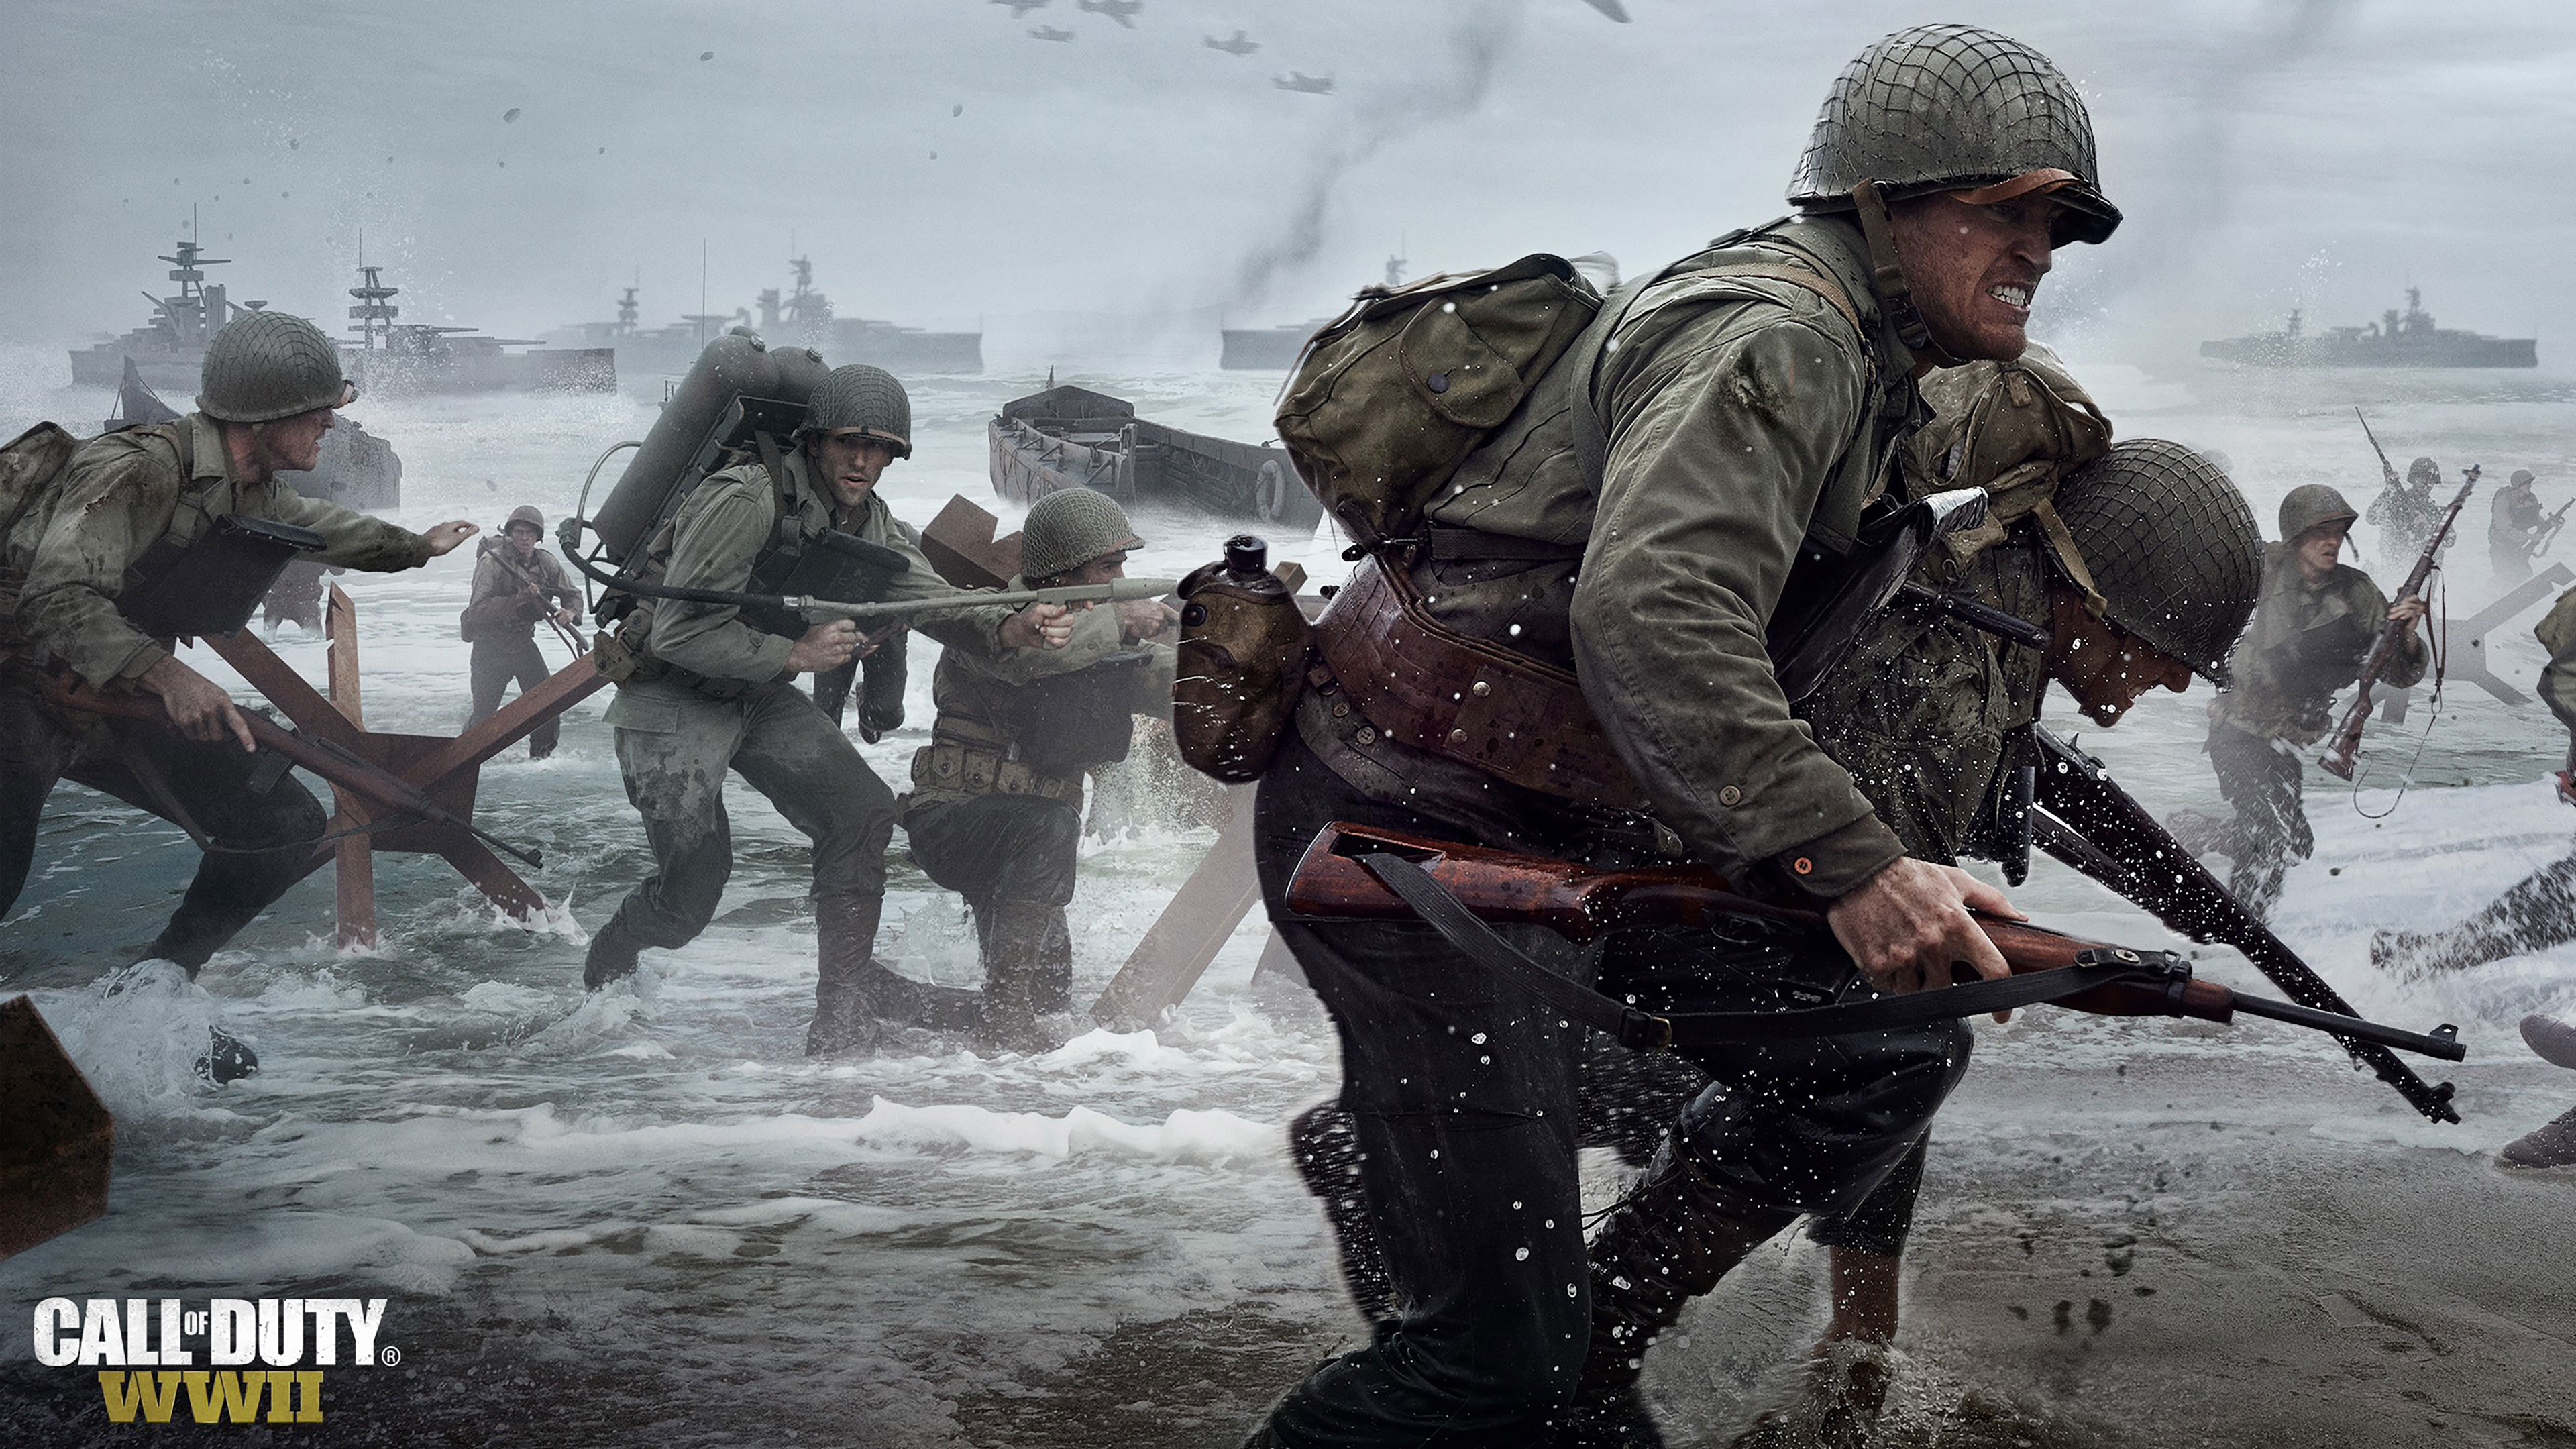 4k Gaming Wallpaper For Mobile Image Gallery - Call Of Duty Ww2 Wallpaper 4k , HD Wallpaper & Backgrounds